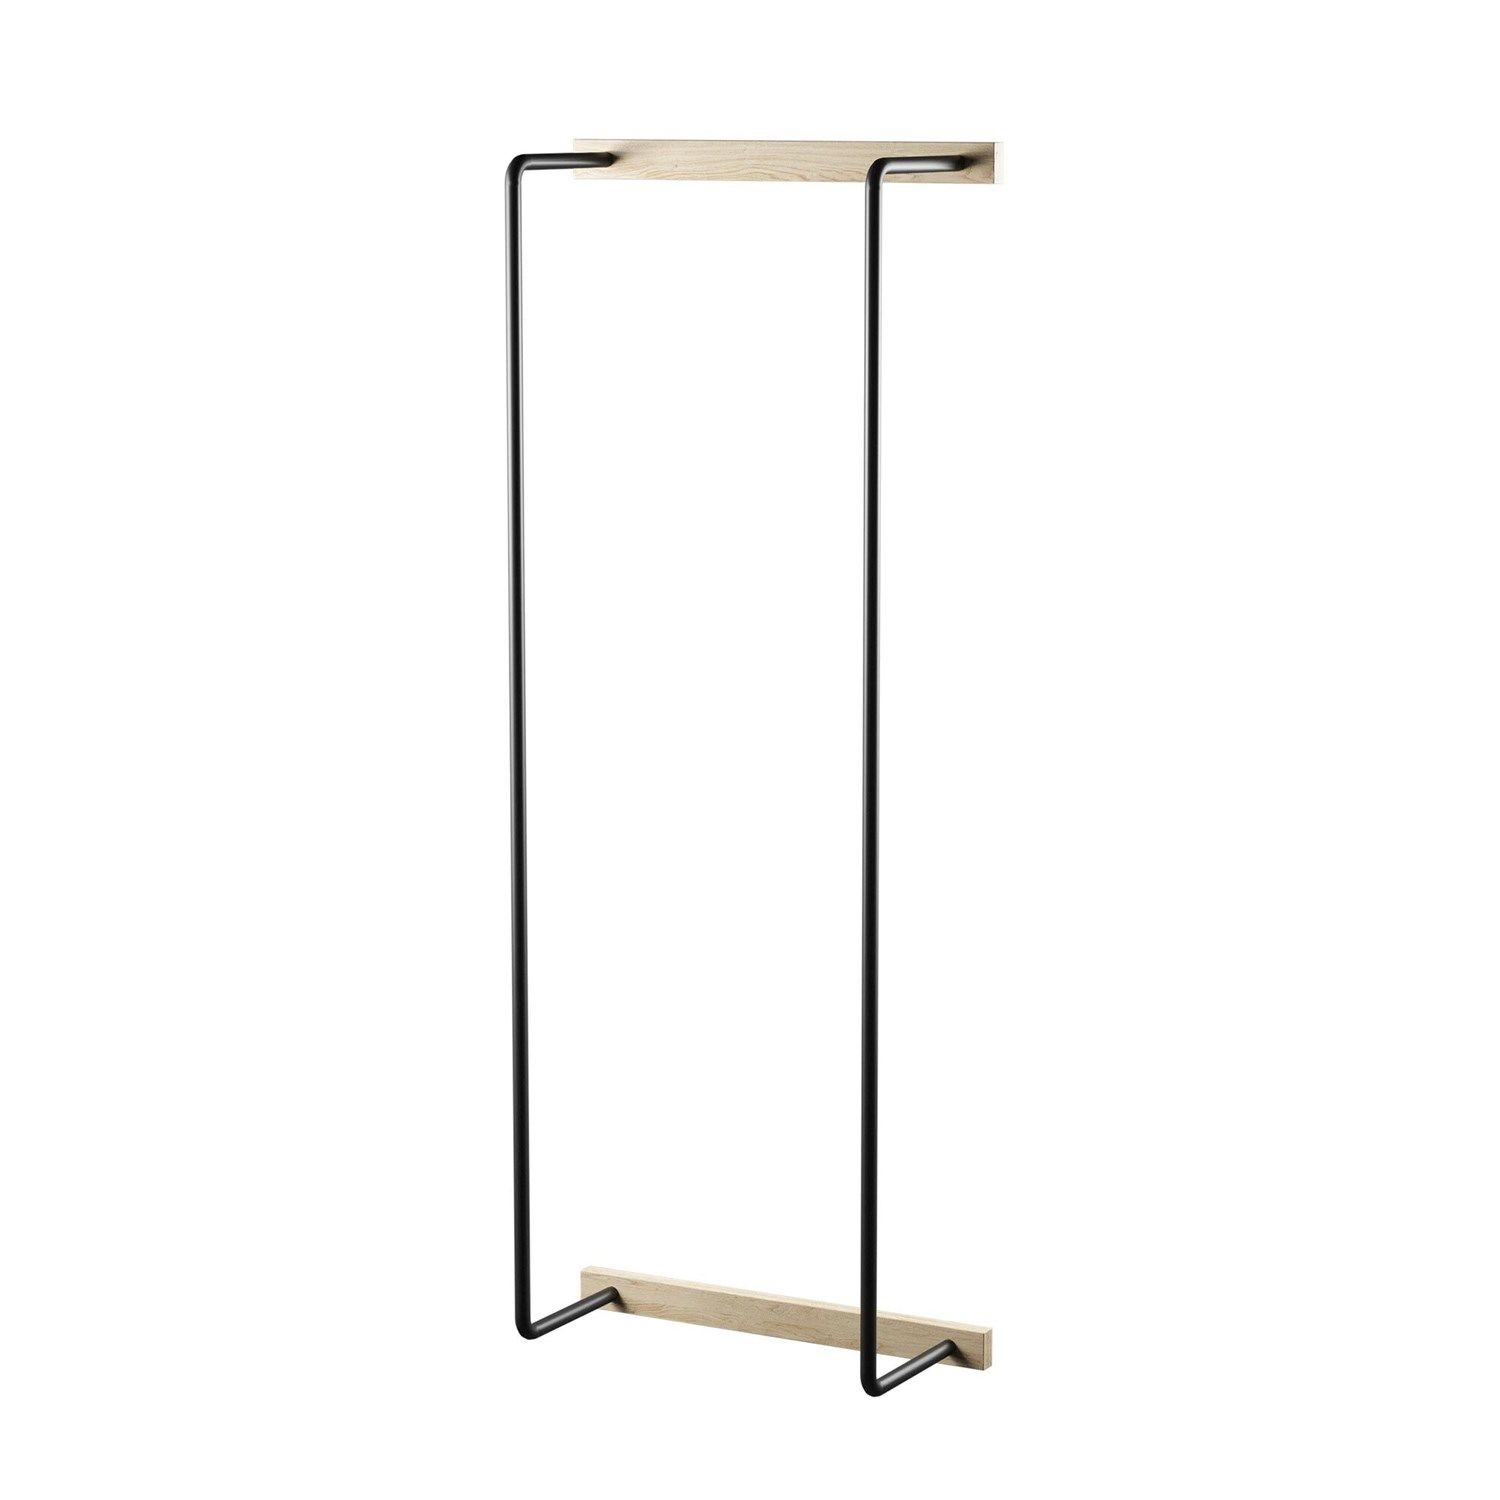 By Wirth - Håndklædeholder - Towel Rack - Nature Eg